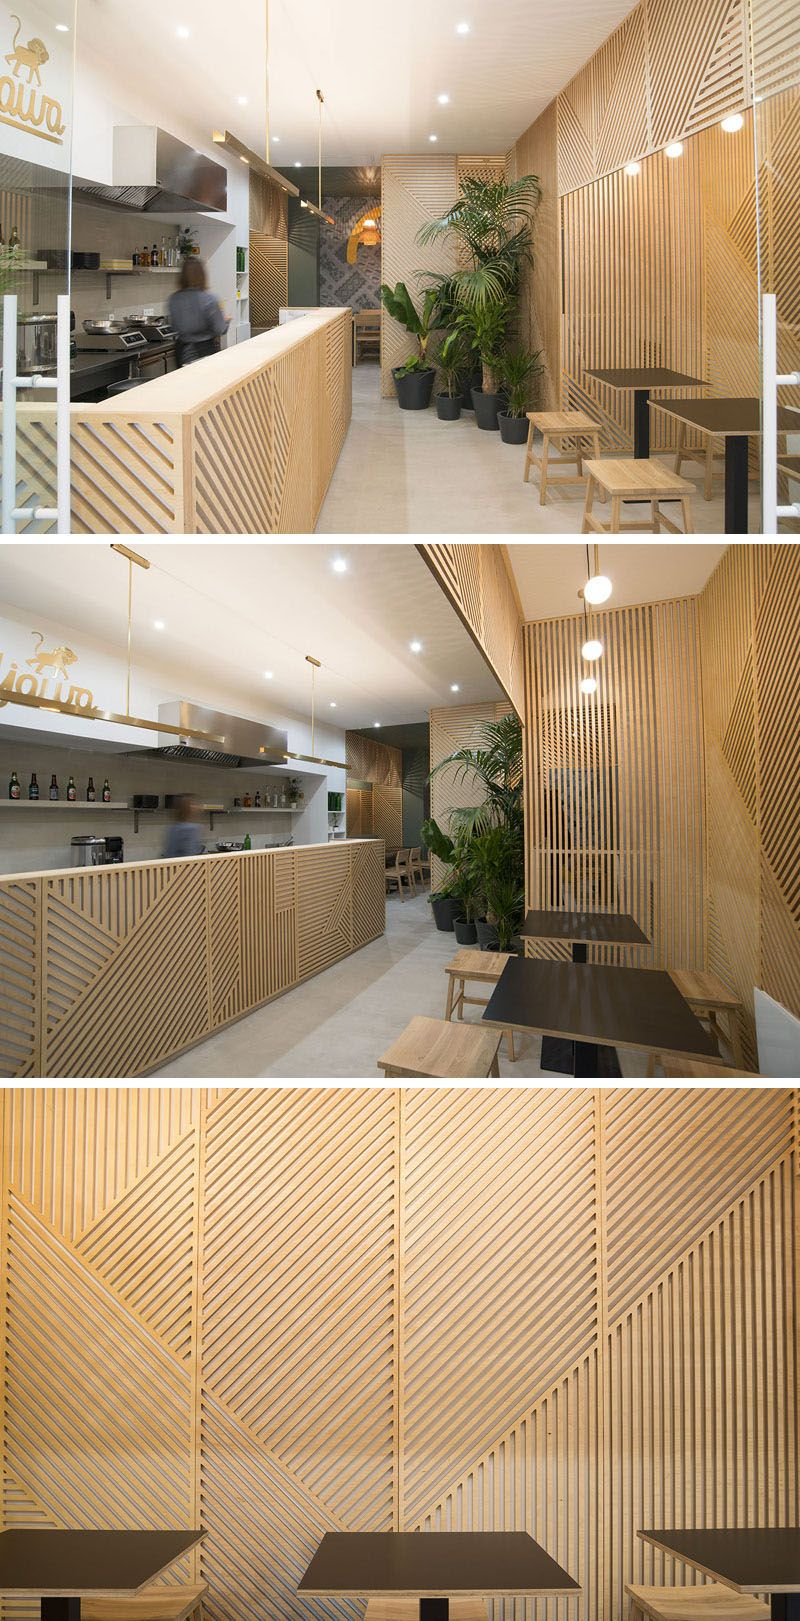 Abstract Bar And Panel Wall Decor For Preferred Wall Decor Idea – This Restaurant Covered Its Walls With Wood Panels (View 9 of 20)